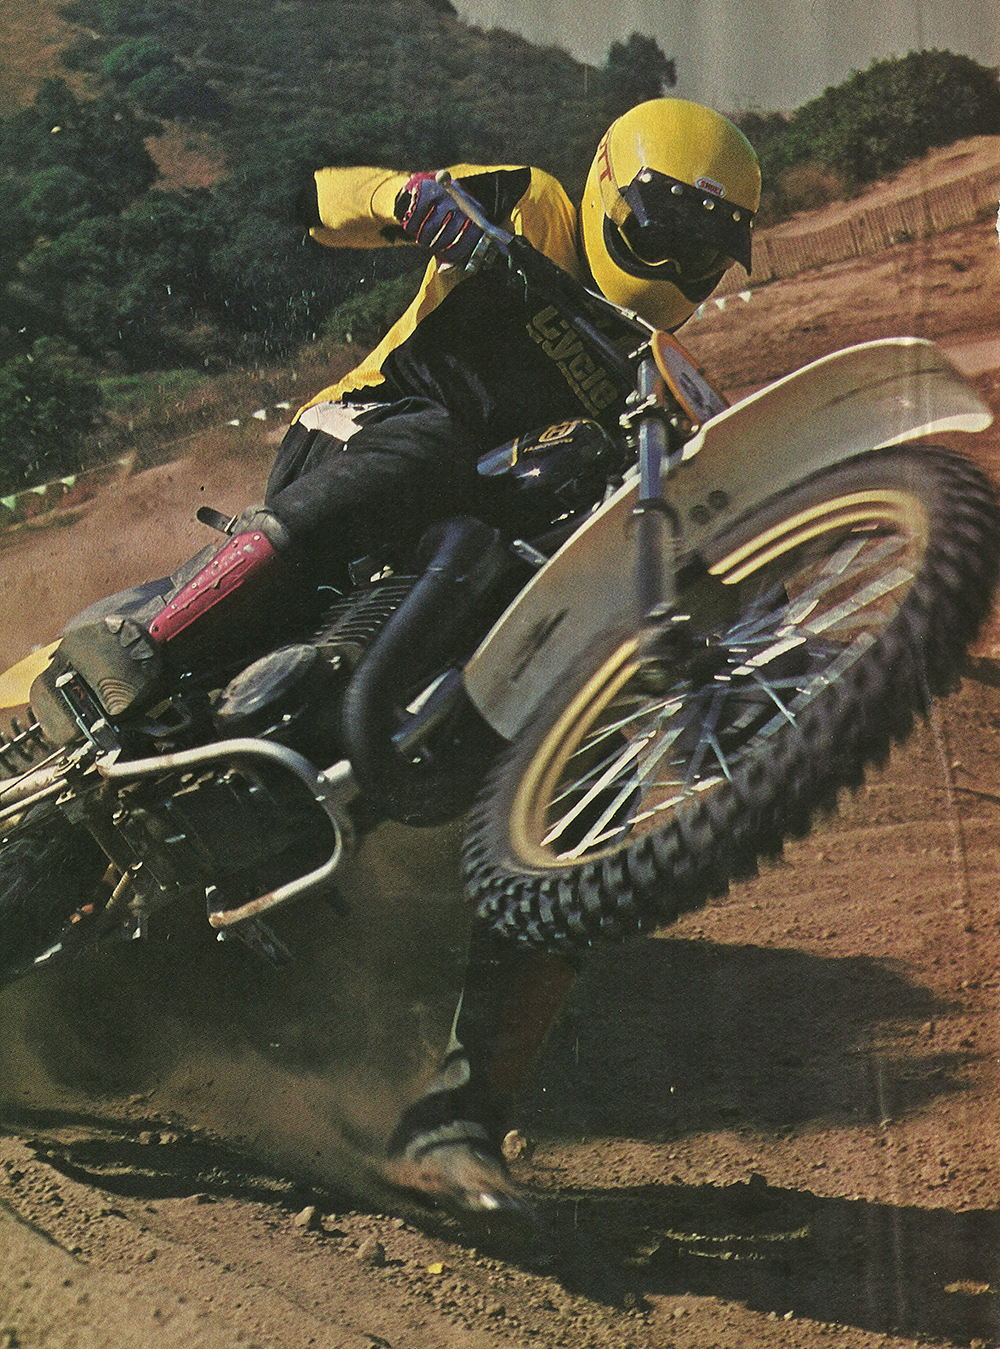 1979 Husqvarna 390 CR off road test 1.JPG